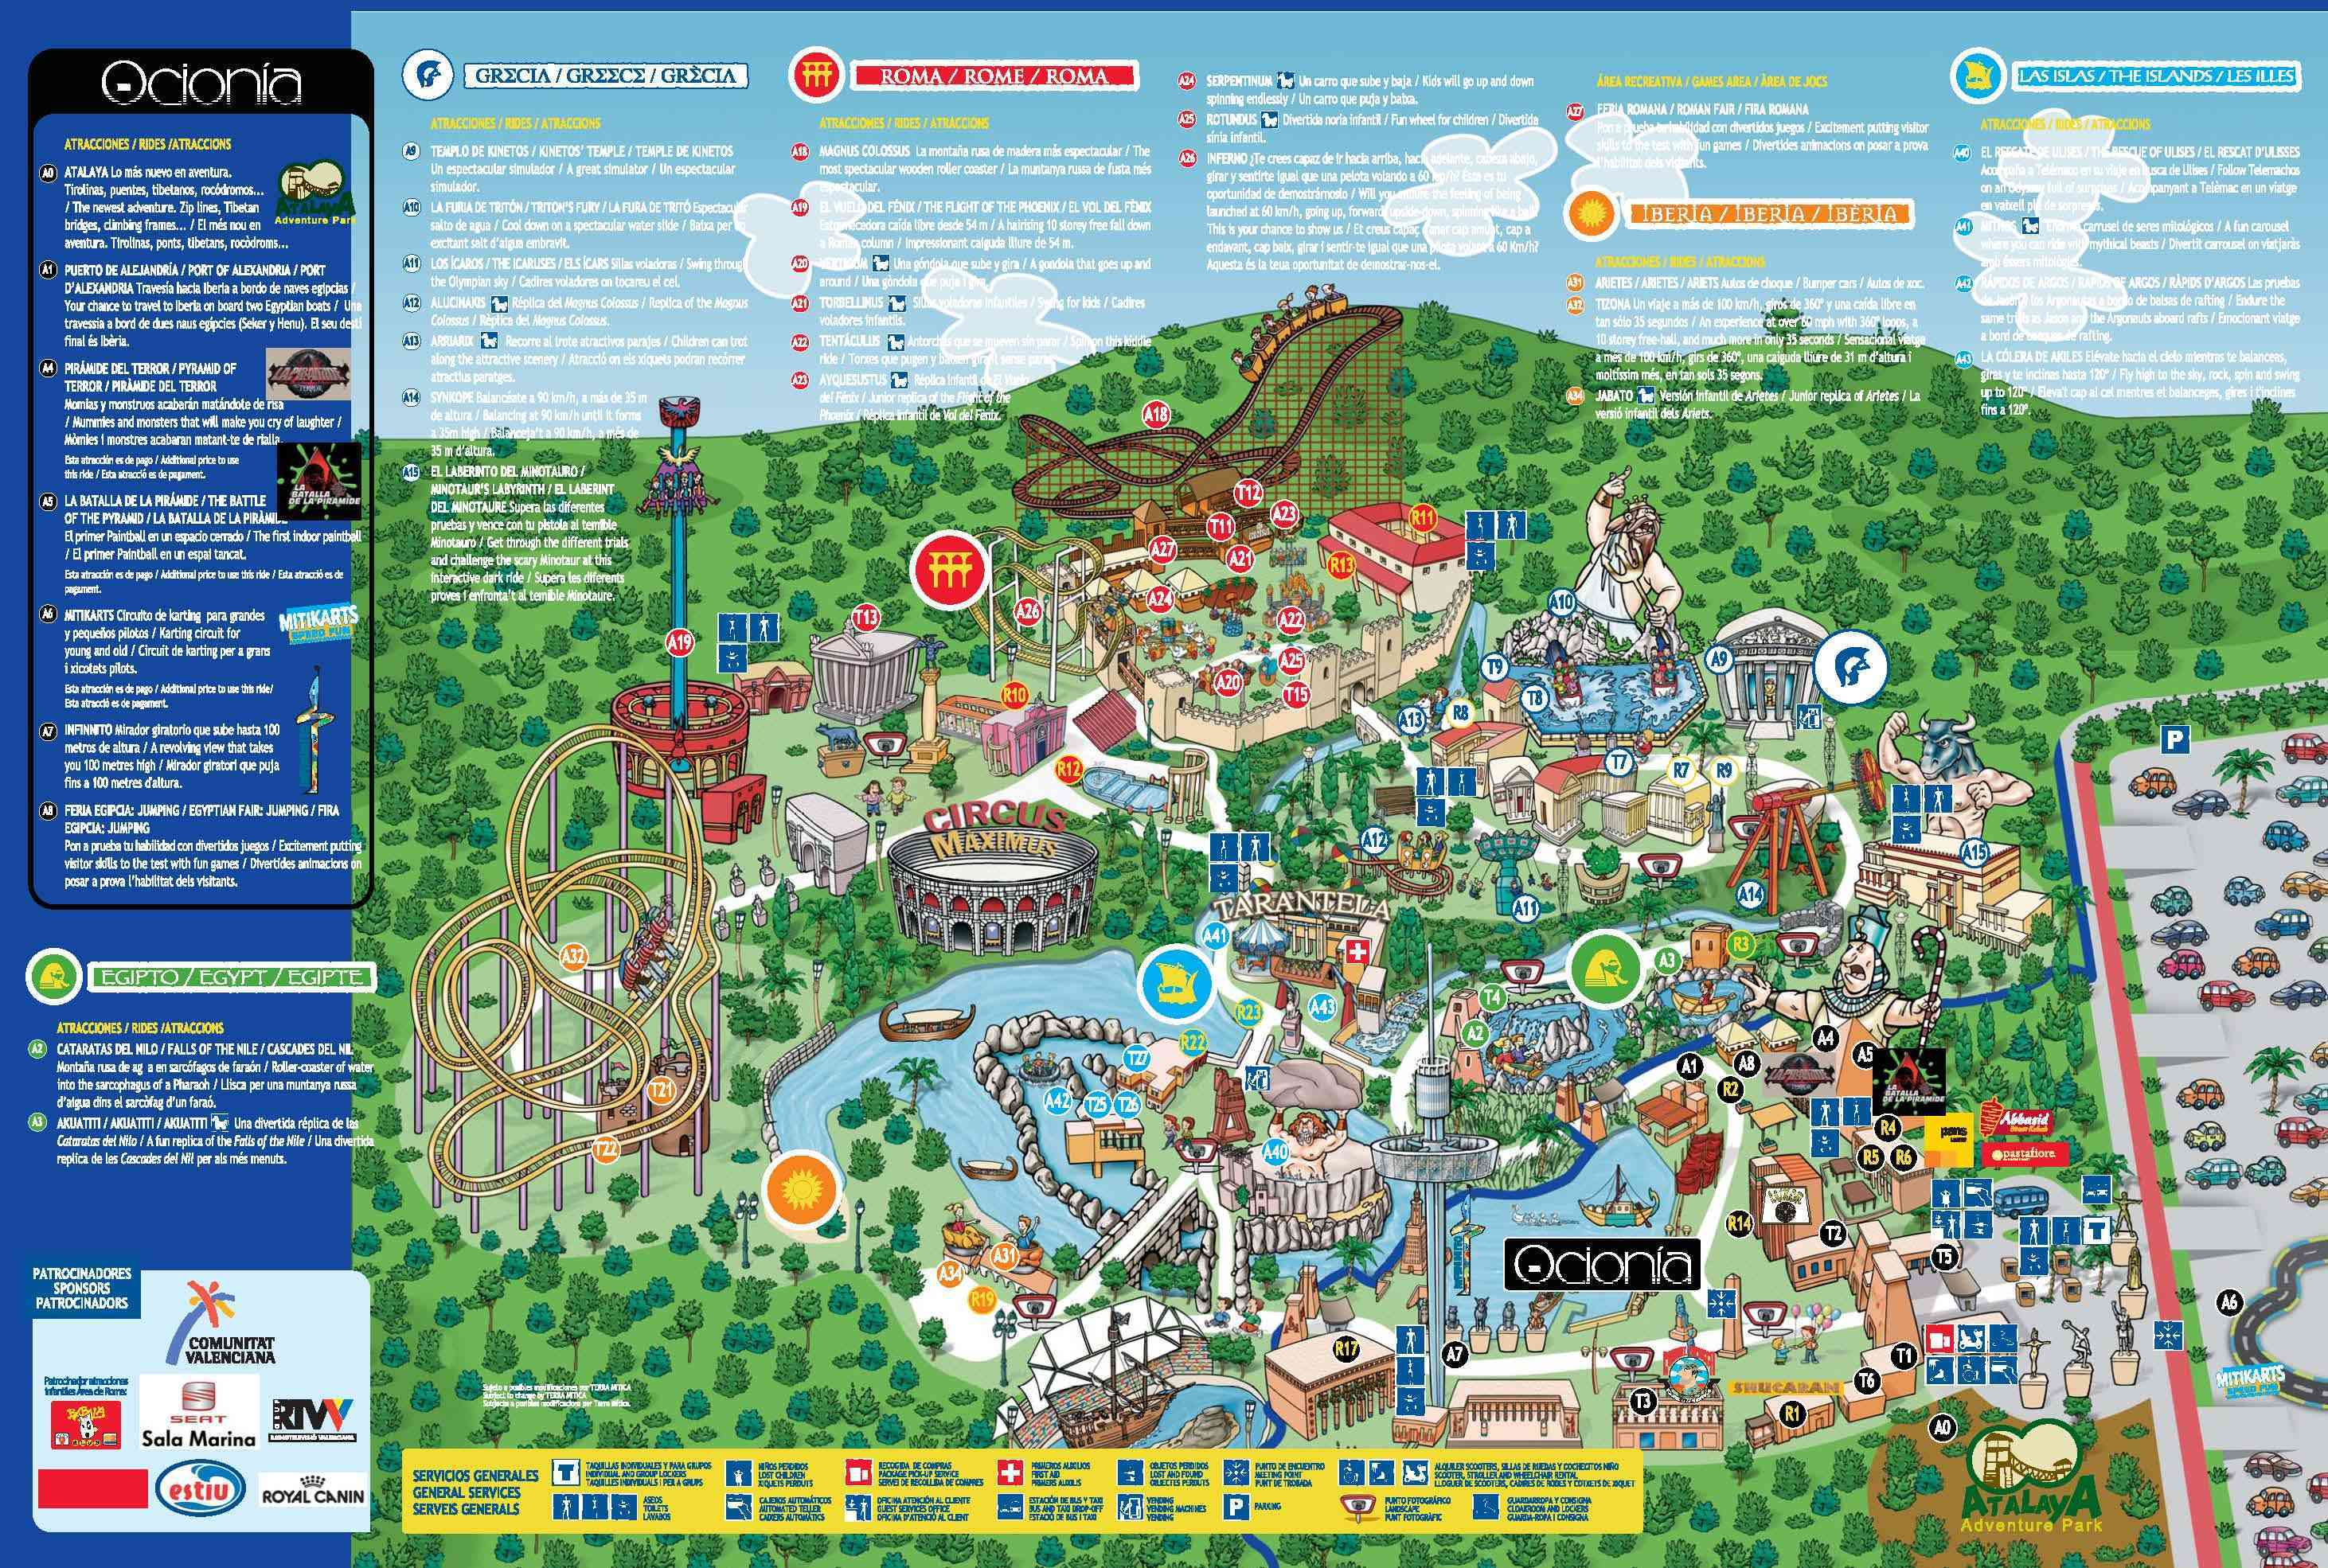 benidorm tourist map large benidorm maps for free download and  - tourist attractions near benidorm spain » home design